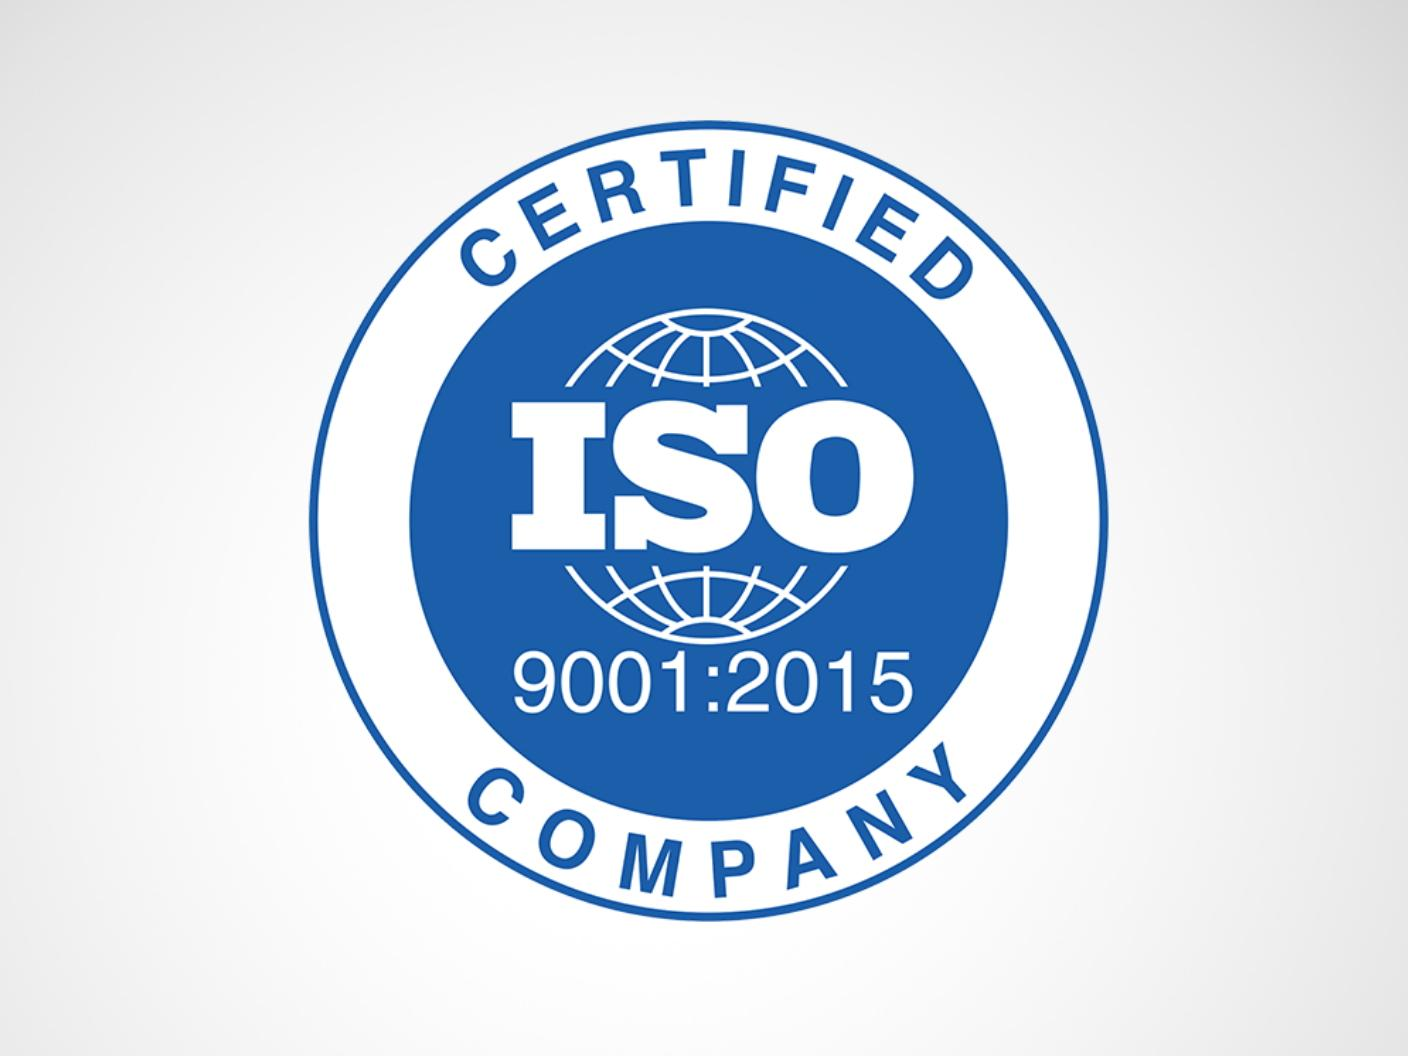 Siemens Healthineers - Certification ISO 9001:2015 - AFNOR Certification